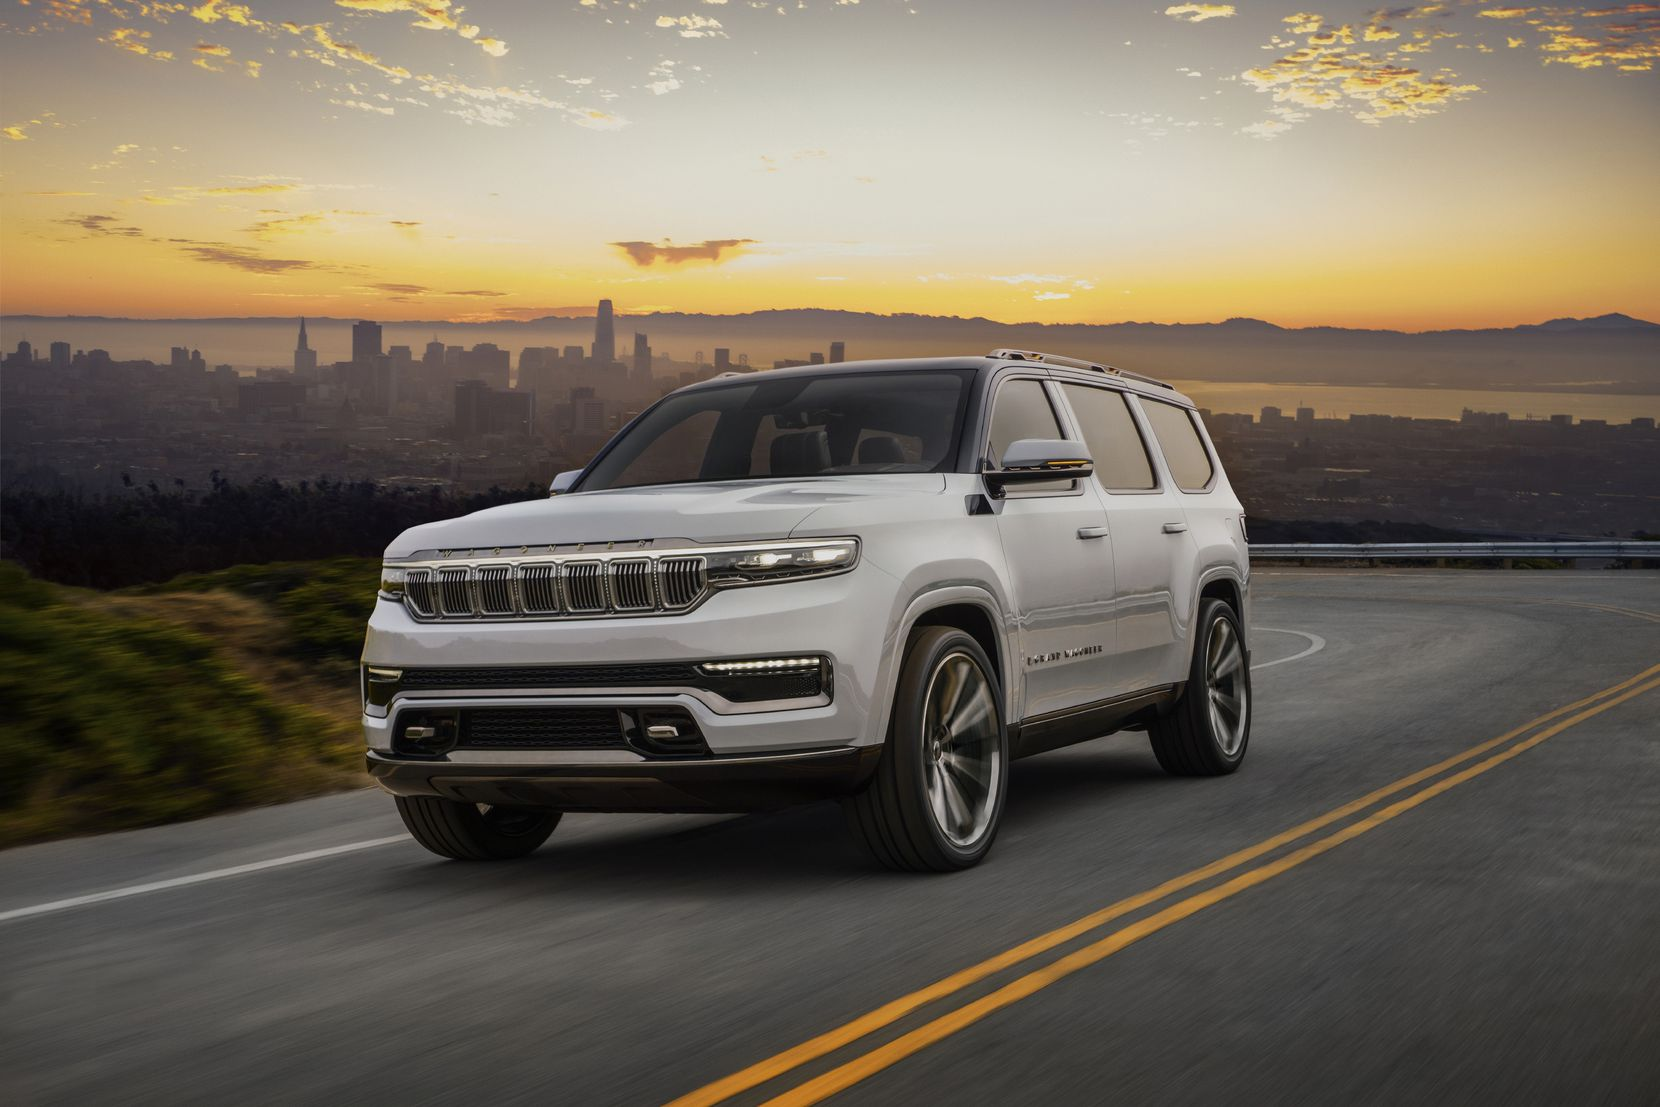 This concept model is reportedly going into production for next year's relaunch of the Jeep Grand Wagoneer.